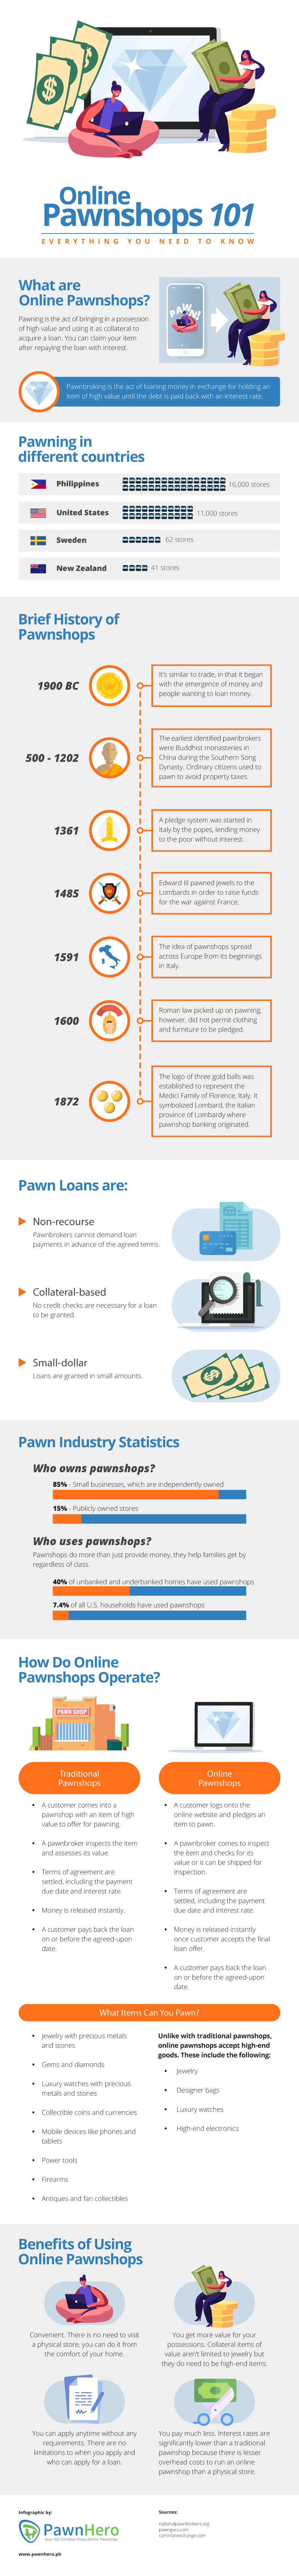 Online Pawnshops: Everything You Need to Know [Infographic]